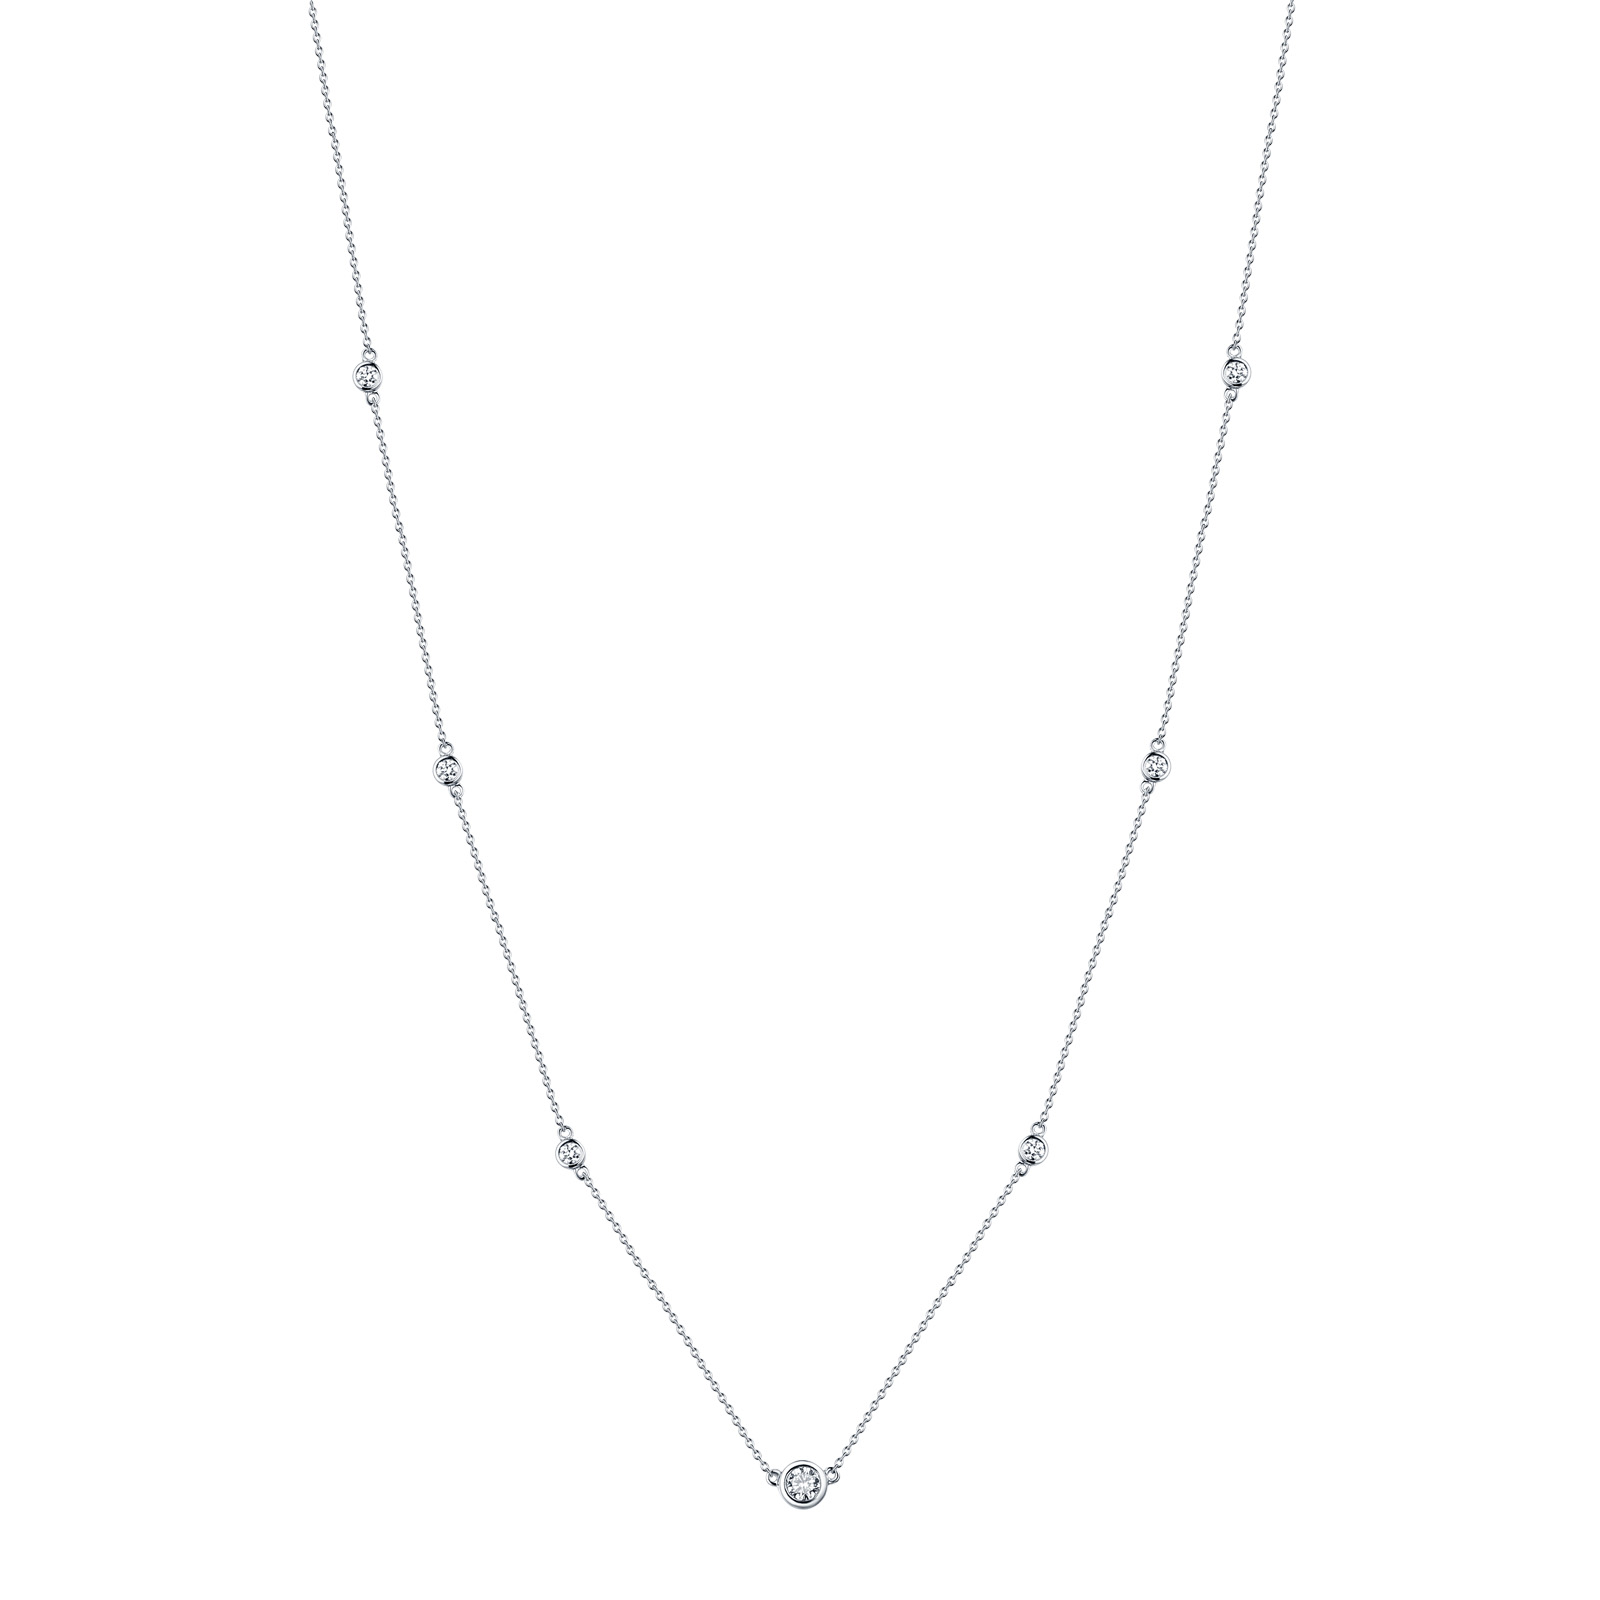 NL26223WHT- 14K White Gold Diamond Necklace, 0.43 TCW